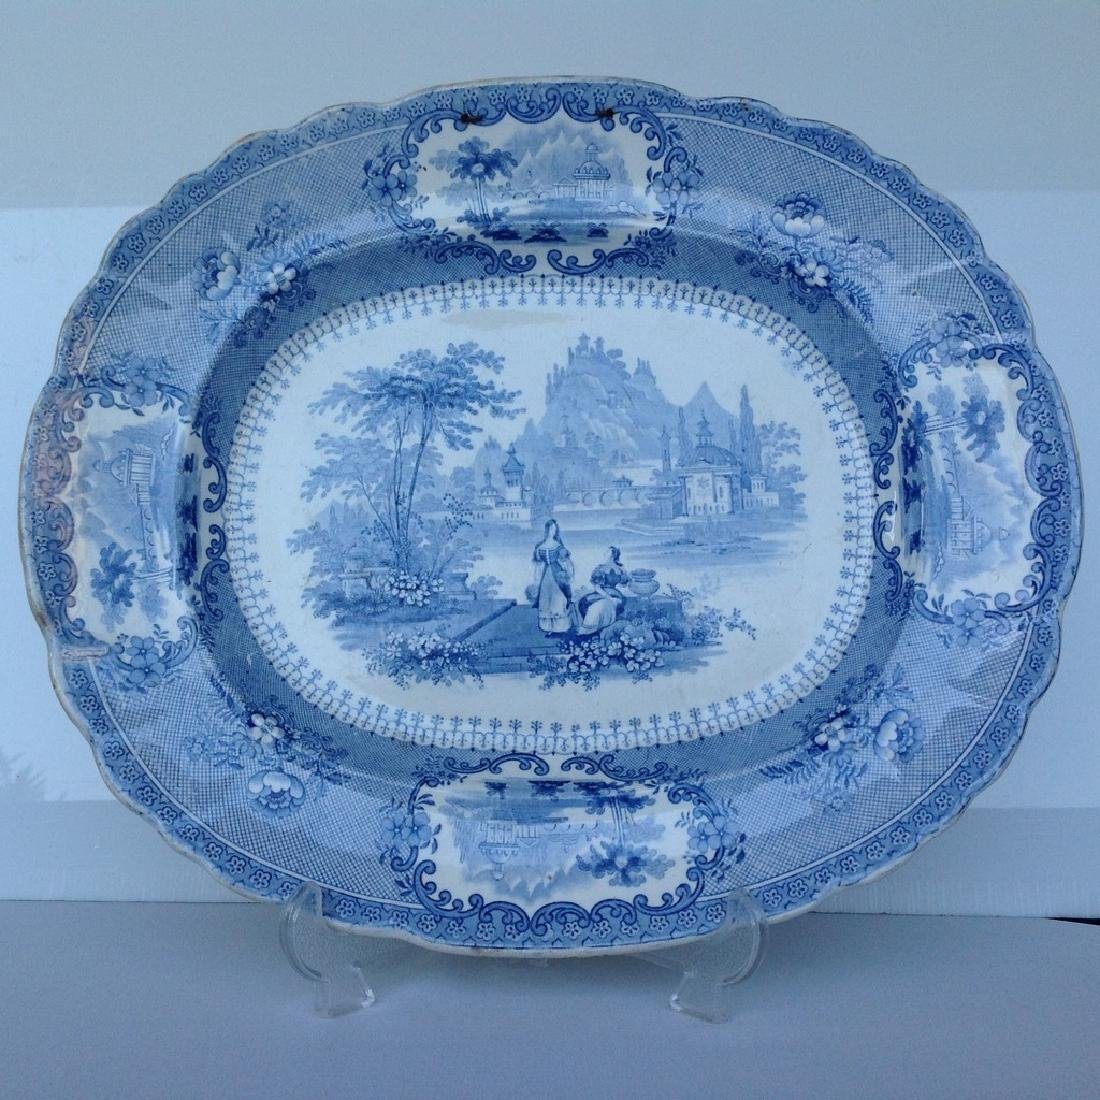 Dish with decorative romantic performance